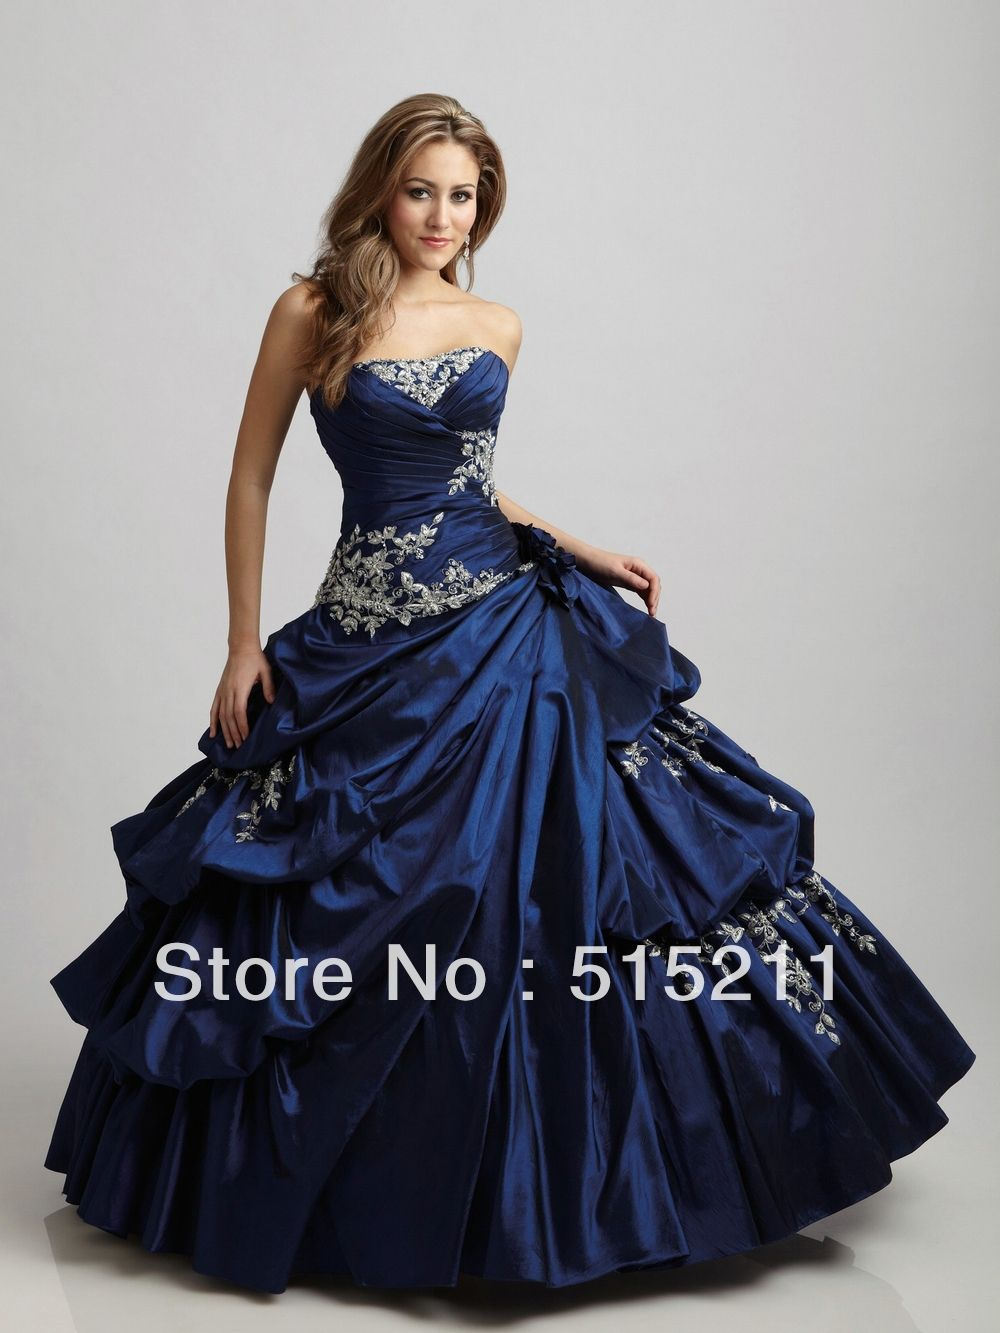 Victorian Ball Gowns . Style Gown Prom